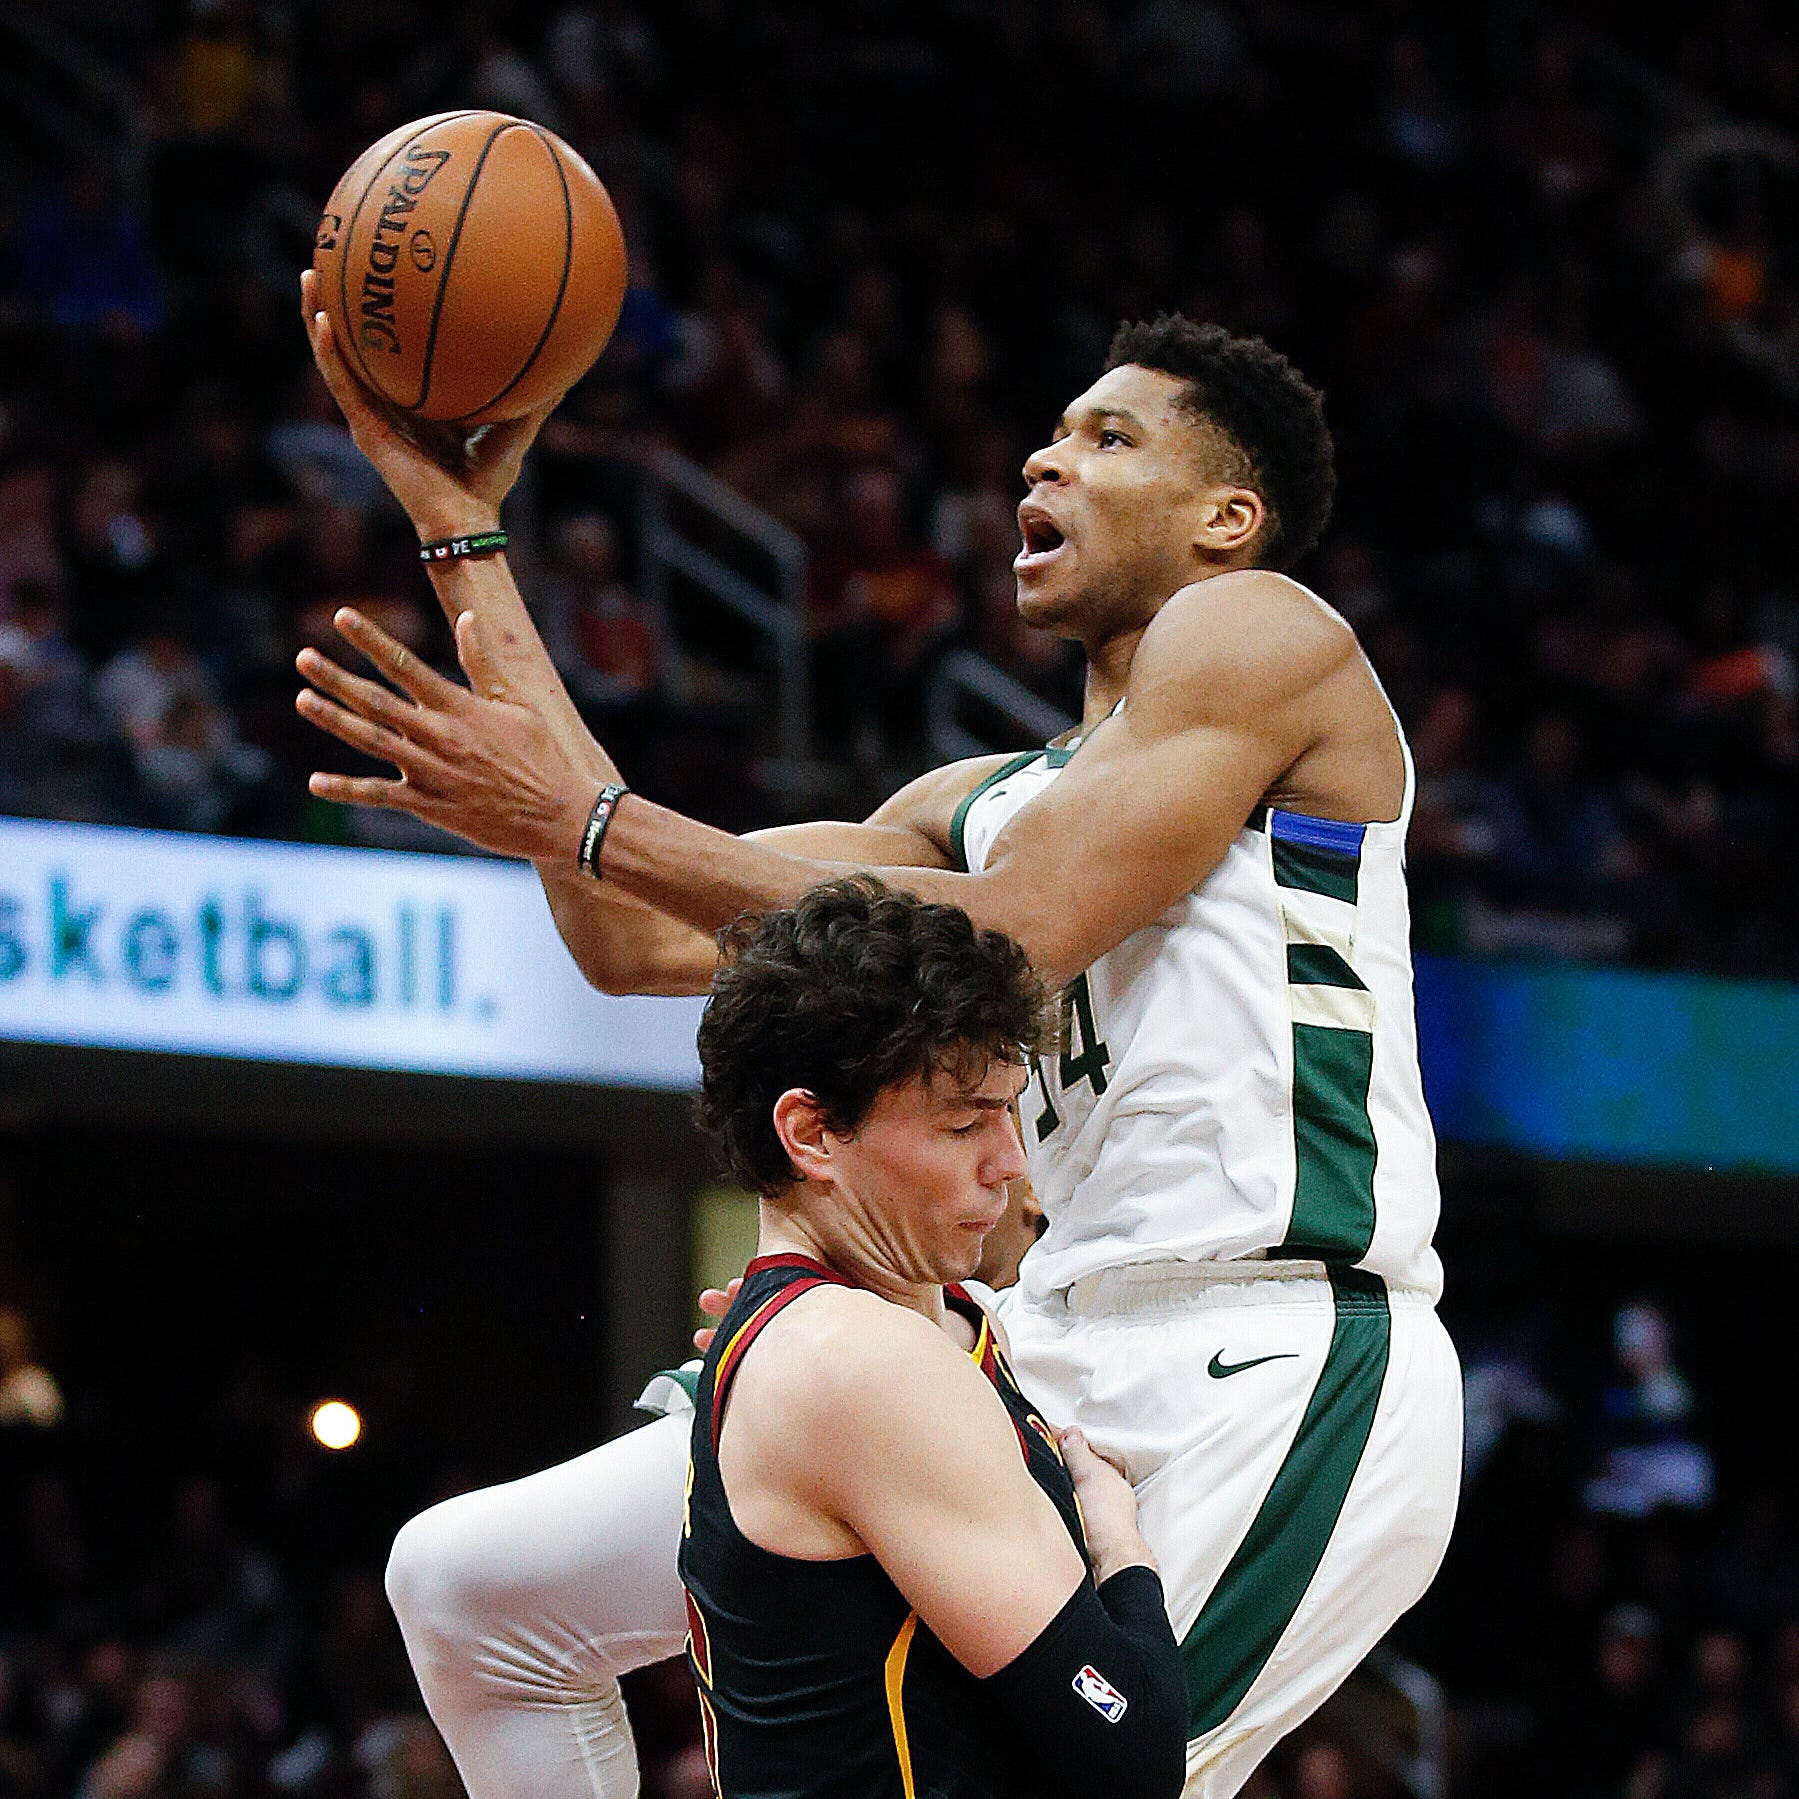 Bucks 114, Cavaliers 102: It's all Giannis, right from the opening dunk